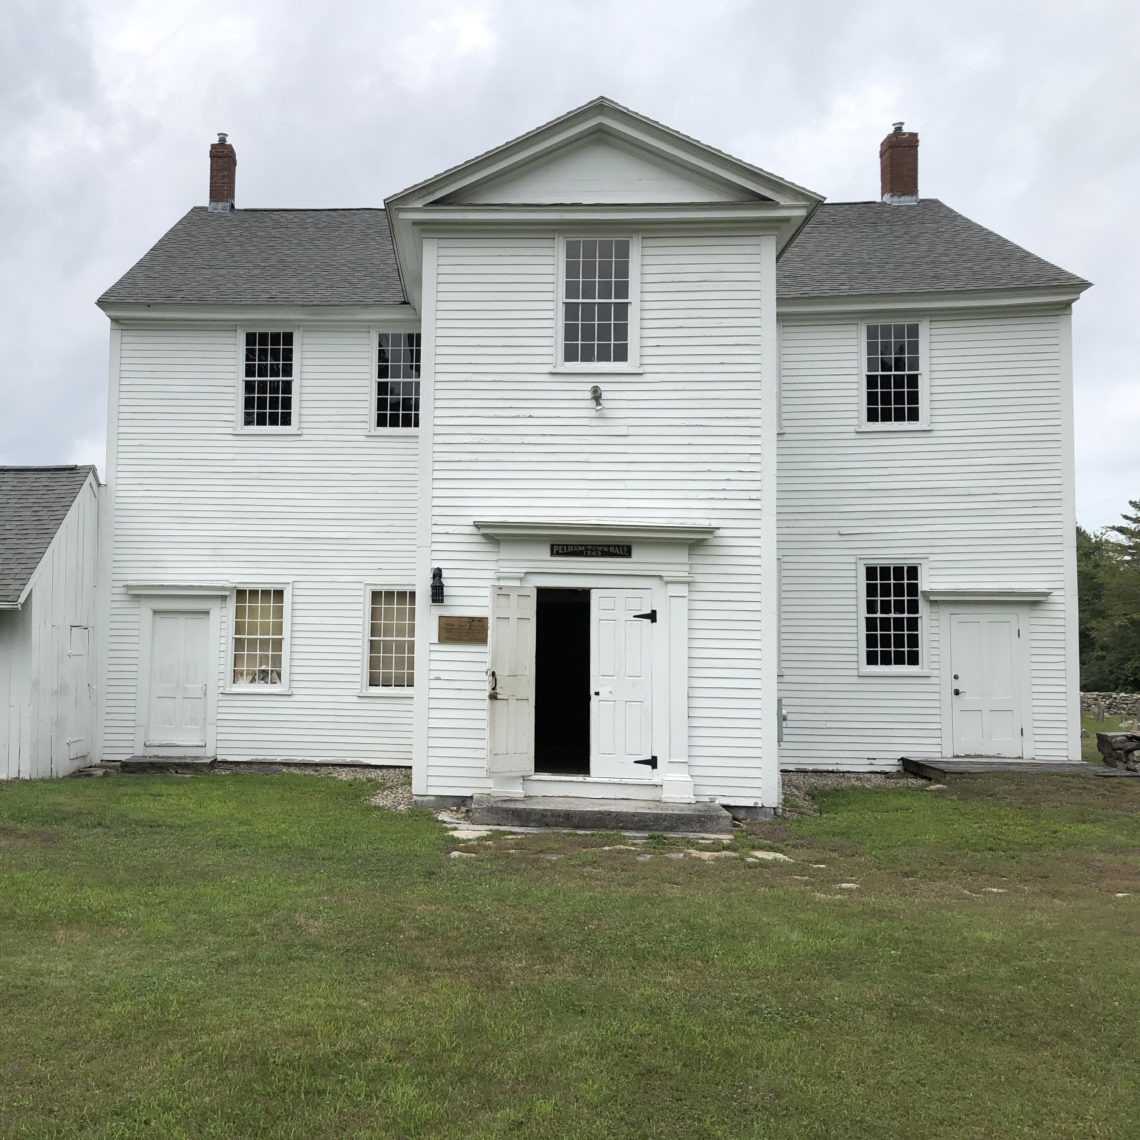 Pelham Town Hall, Pelham, Massachusetts, the site of meetings for the farmers' protest movement that came to be called Shays' Rebellion, in 1786-7.